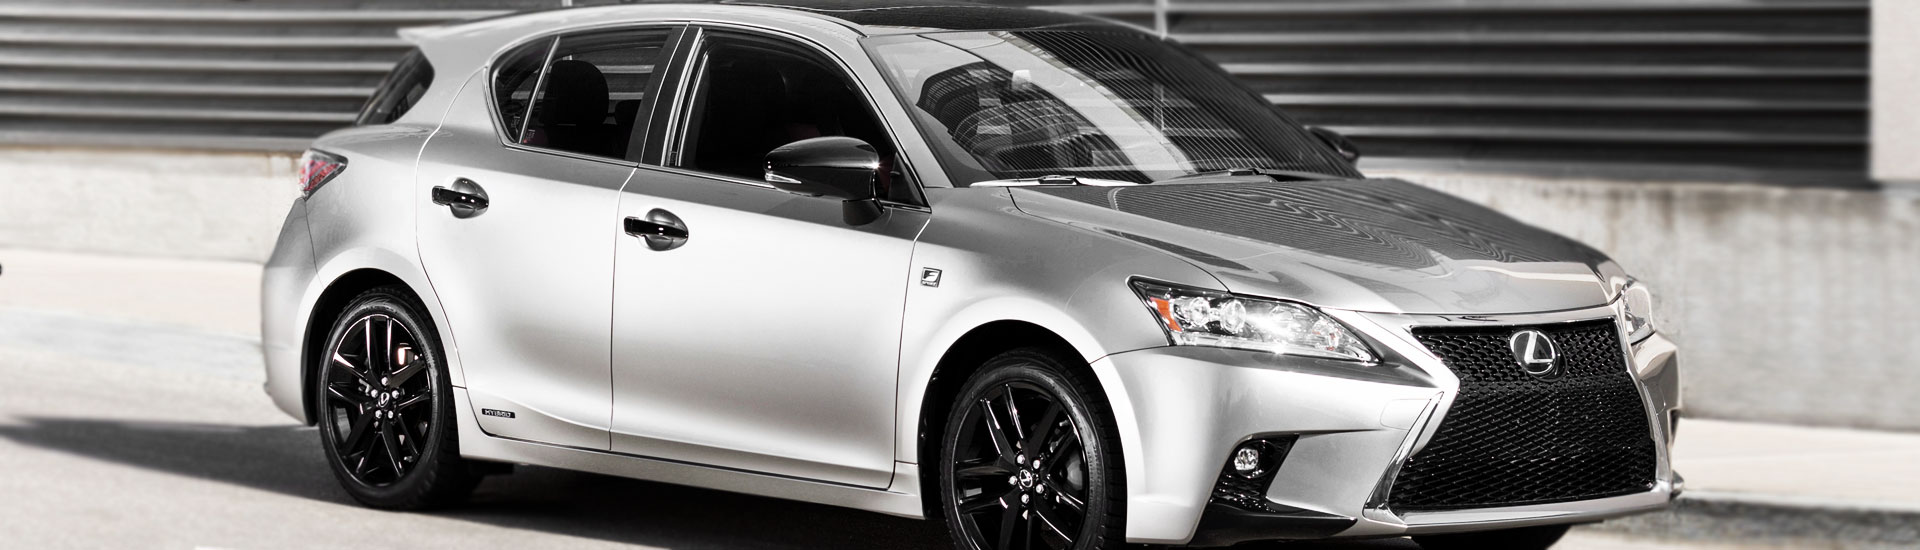 Lexus CT Window Tint